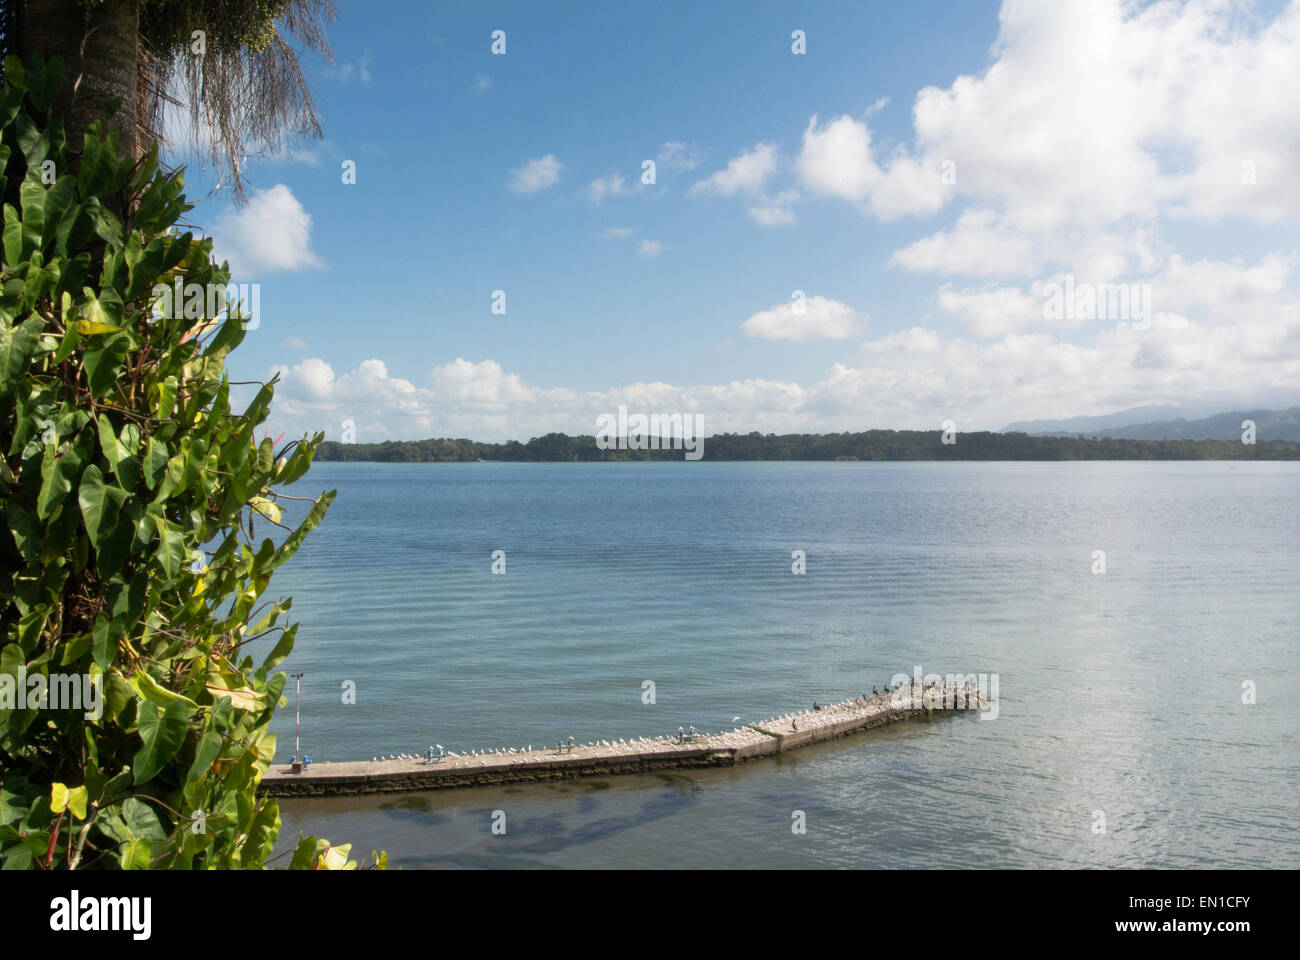 Pier at the Hotel Villa Caribe, Livingston, Guatemala Stock Photo